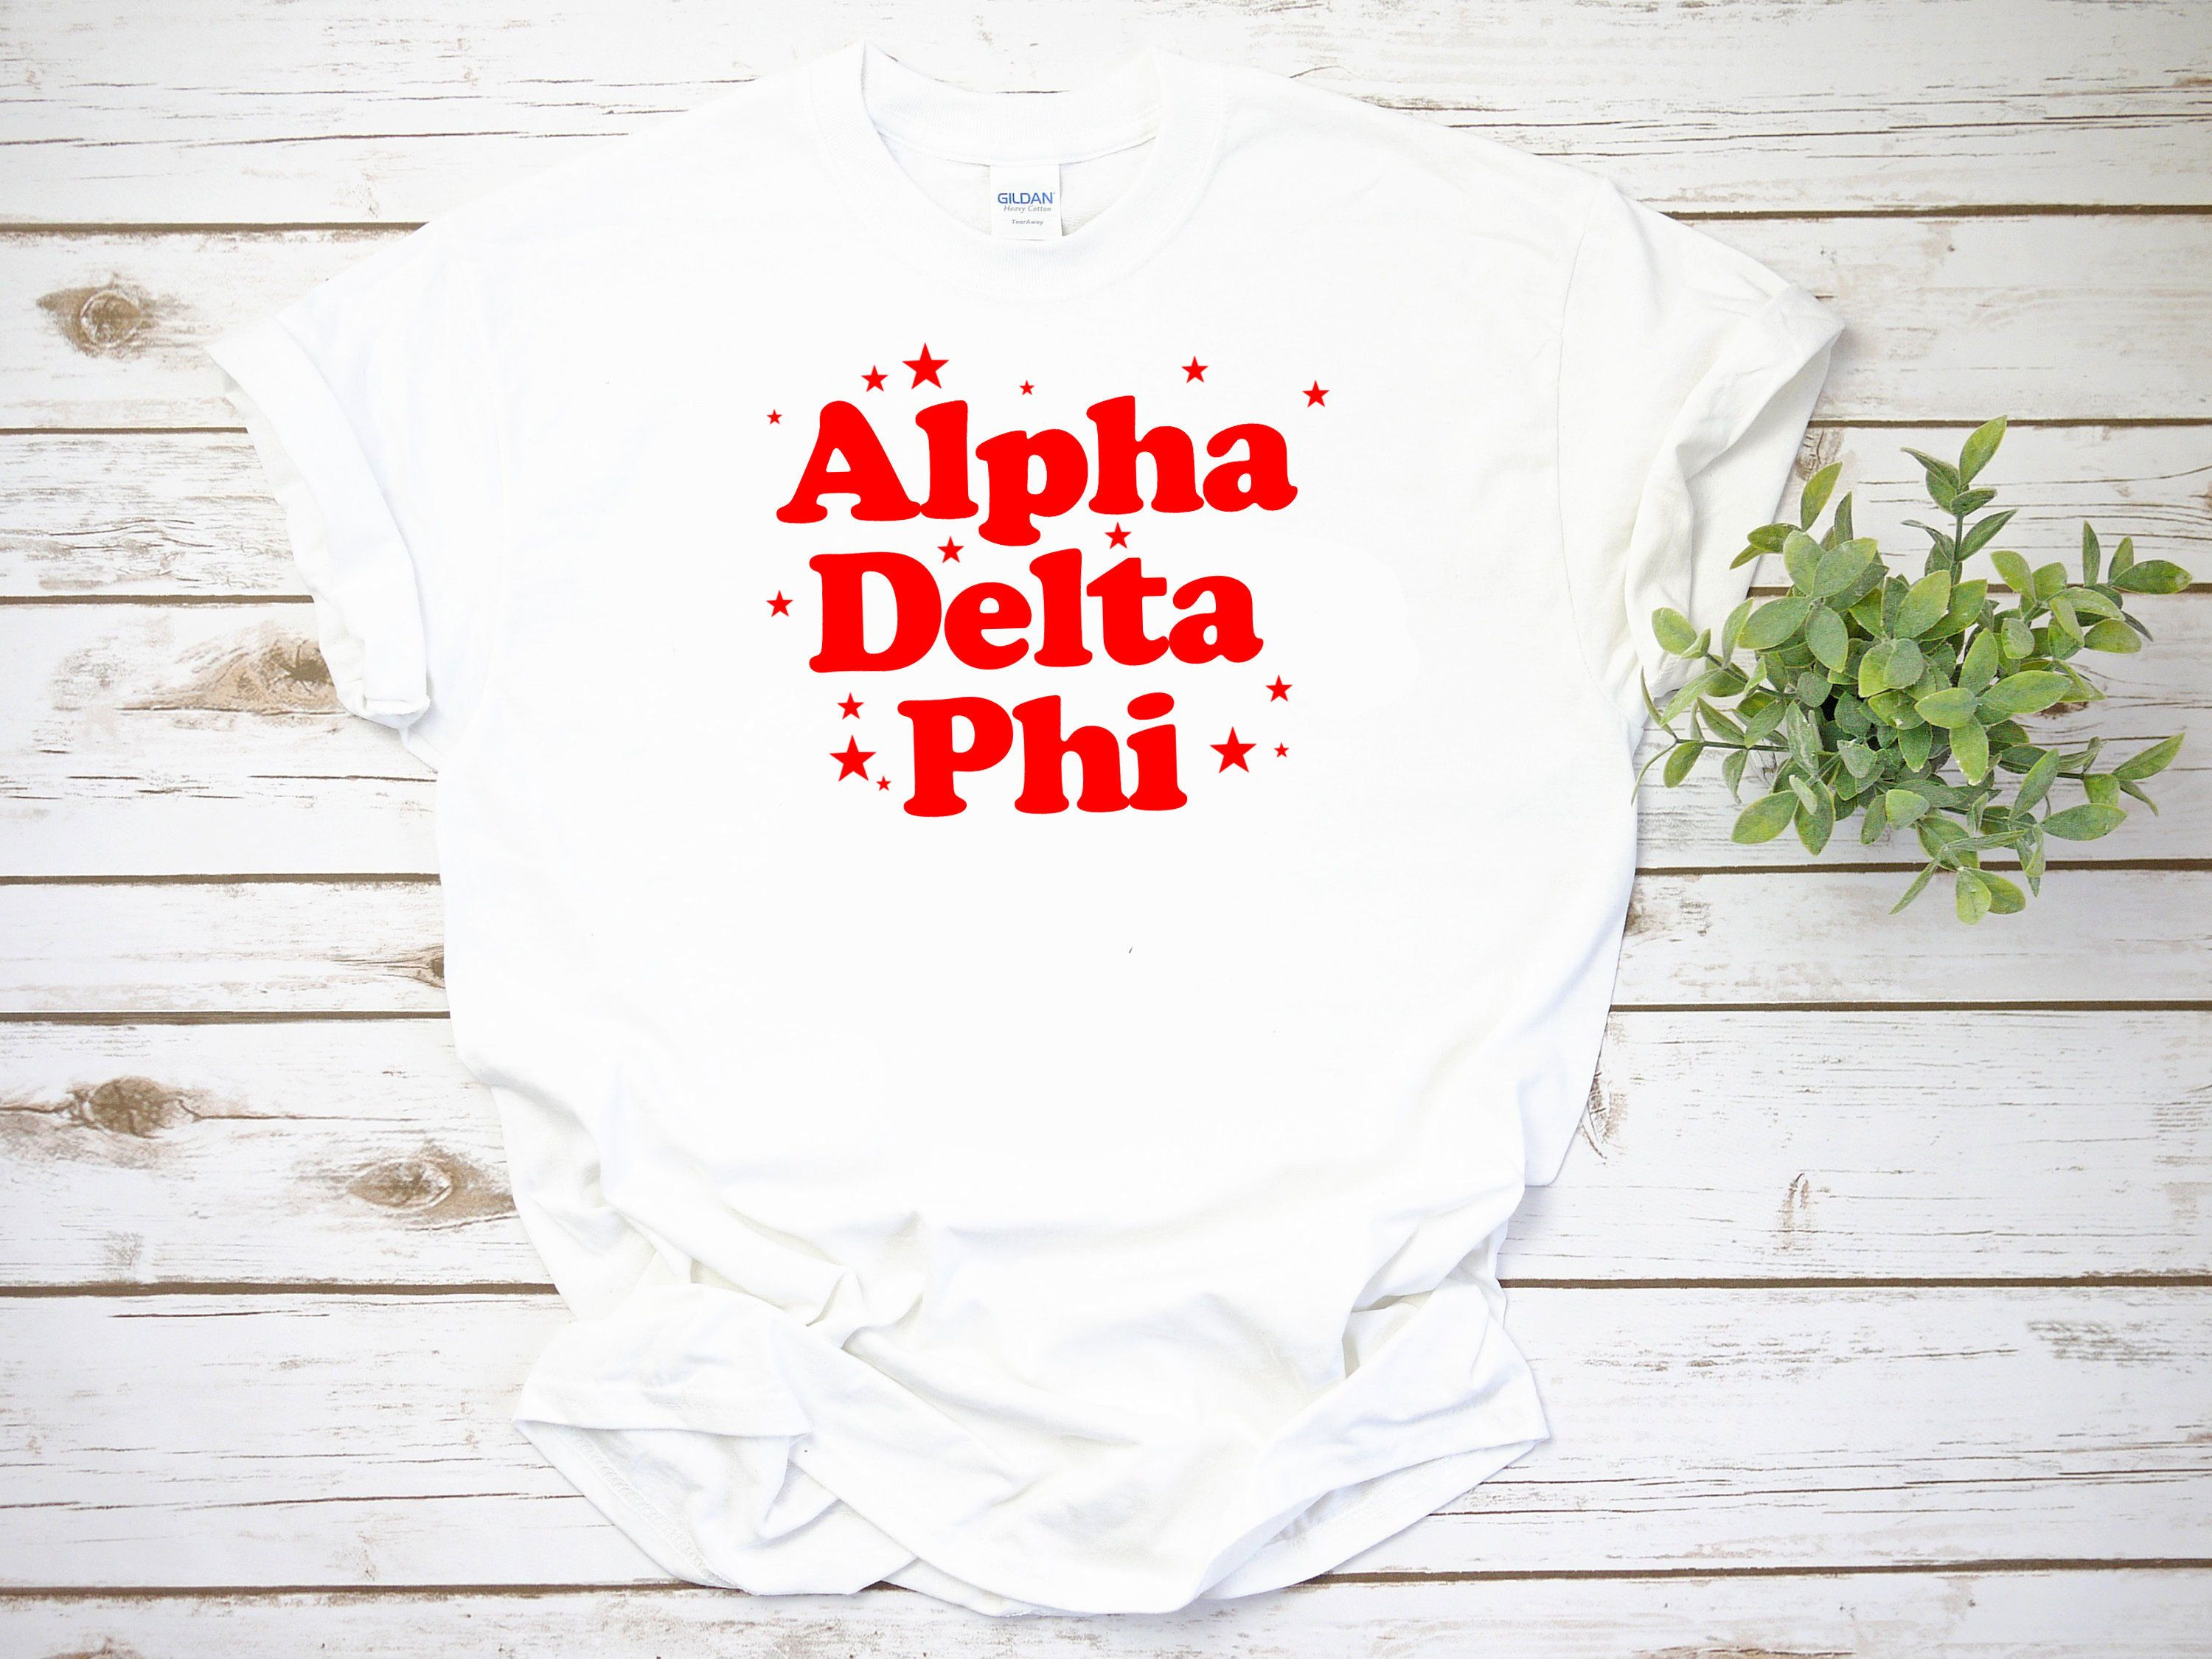 Big Little Shirt, Sorority Shirt, Sorority Tank Top, Big Little gift, Big Little reveal, Sorority Gift, Sorority reveal party shirts B34 #biglittlereveal